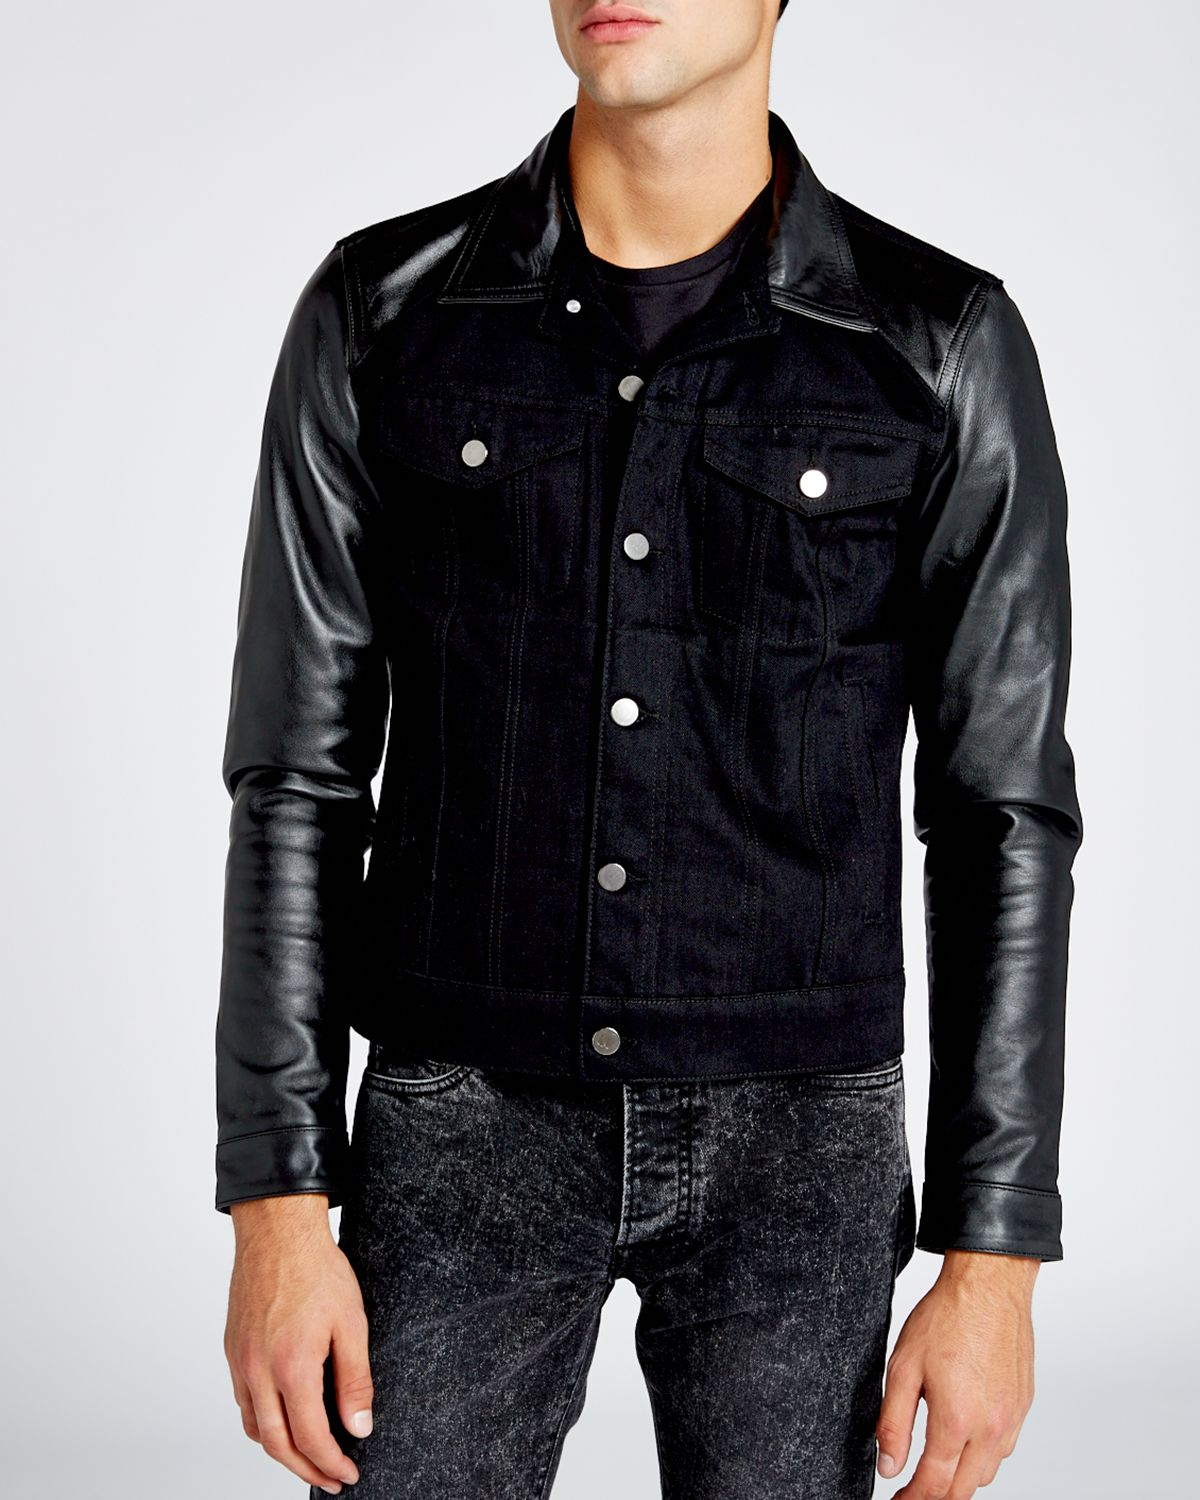 6a57f4a342d Lyst - The Kooples Leather Sleeve Denim Jacket in Black for Men